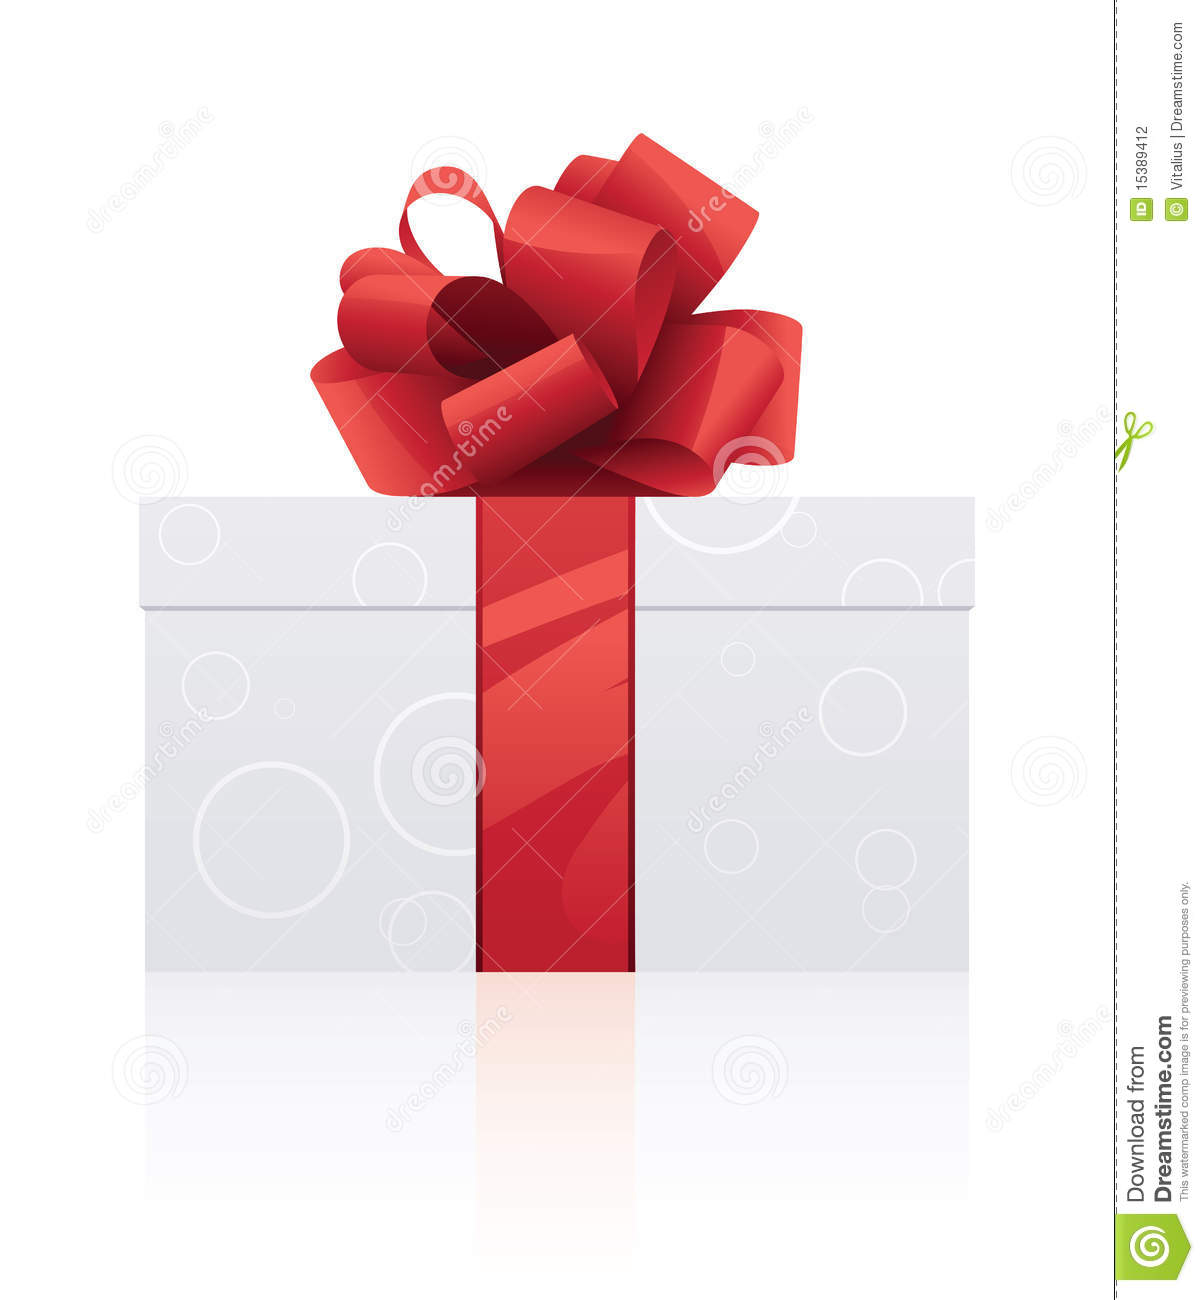 Side view of gift wrapped box shaped present with red ribbon and